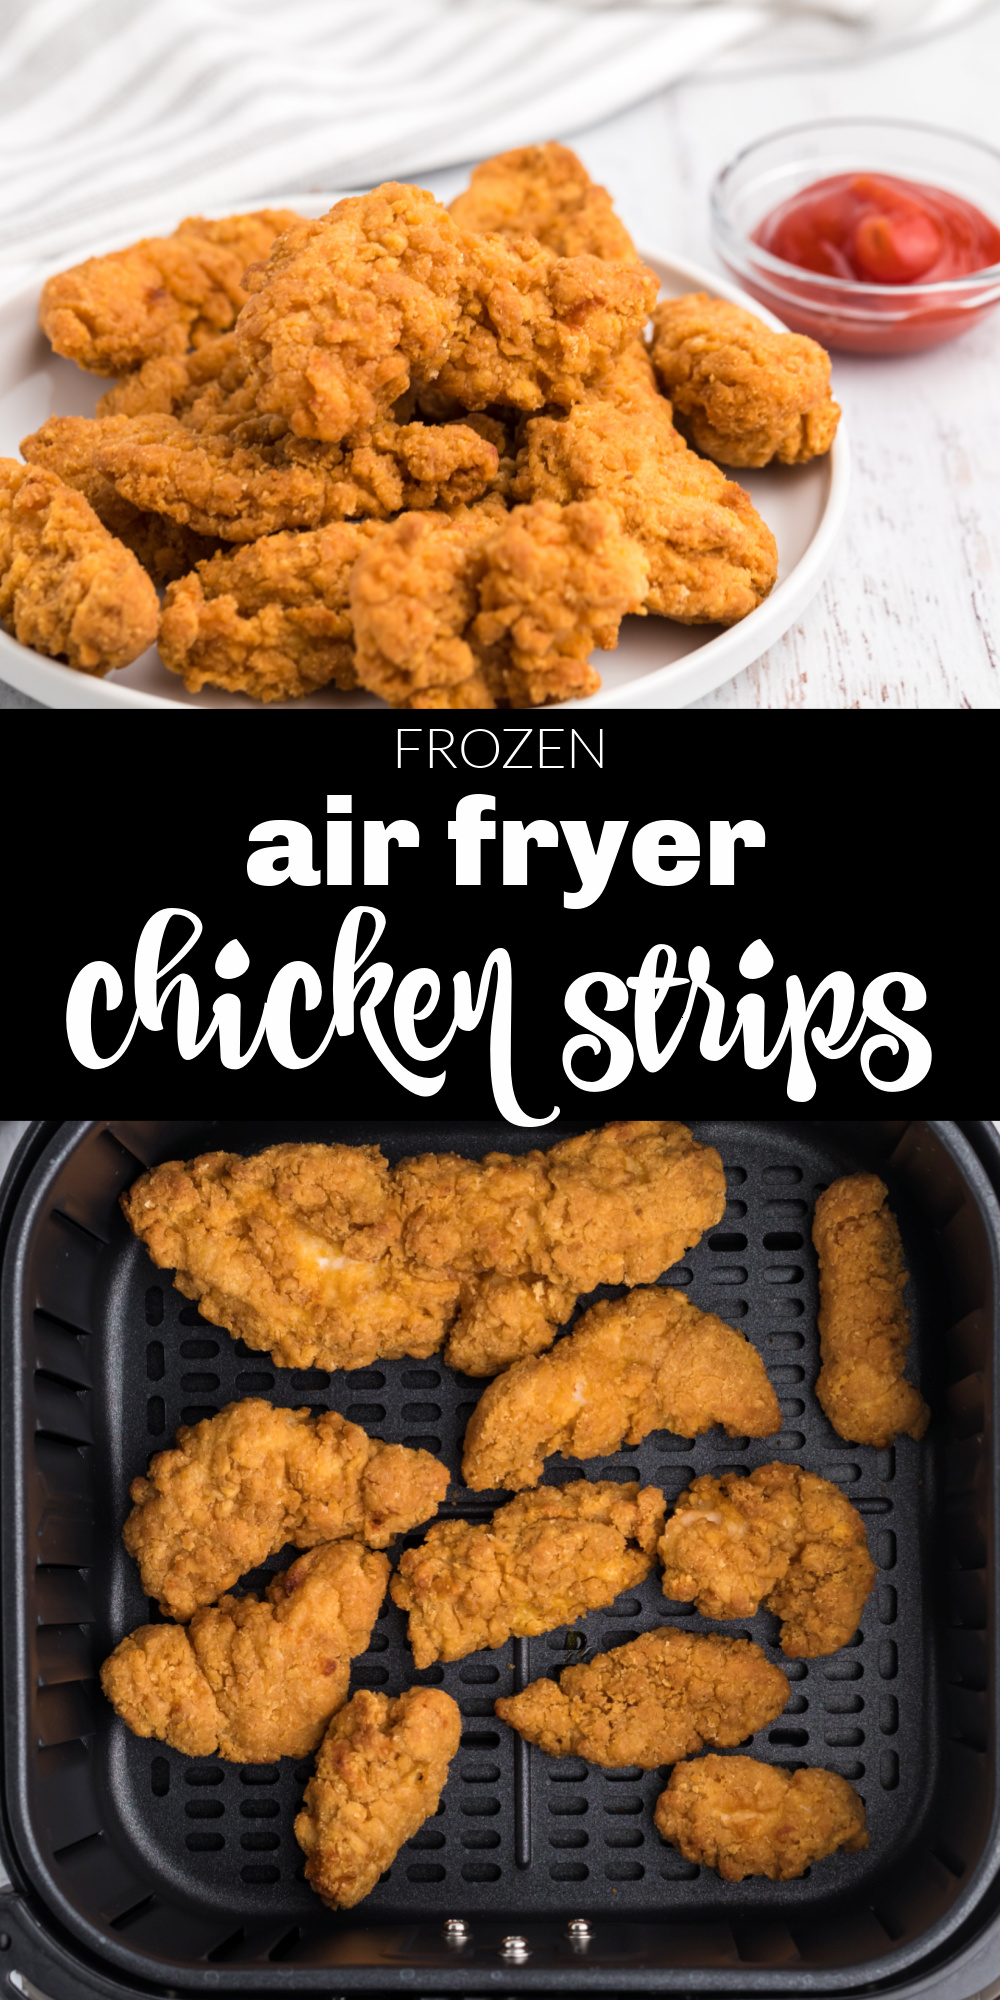 These frozen air fryer chicken tenders are super easy and made perfect in the air fryer. You'll love how fast they are, and the kids will love how crispy and delicious they are!